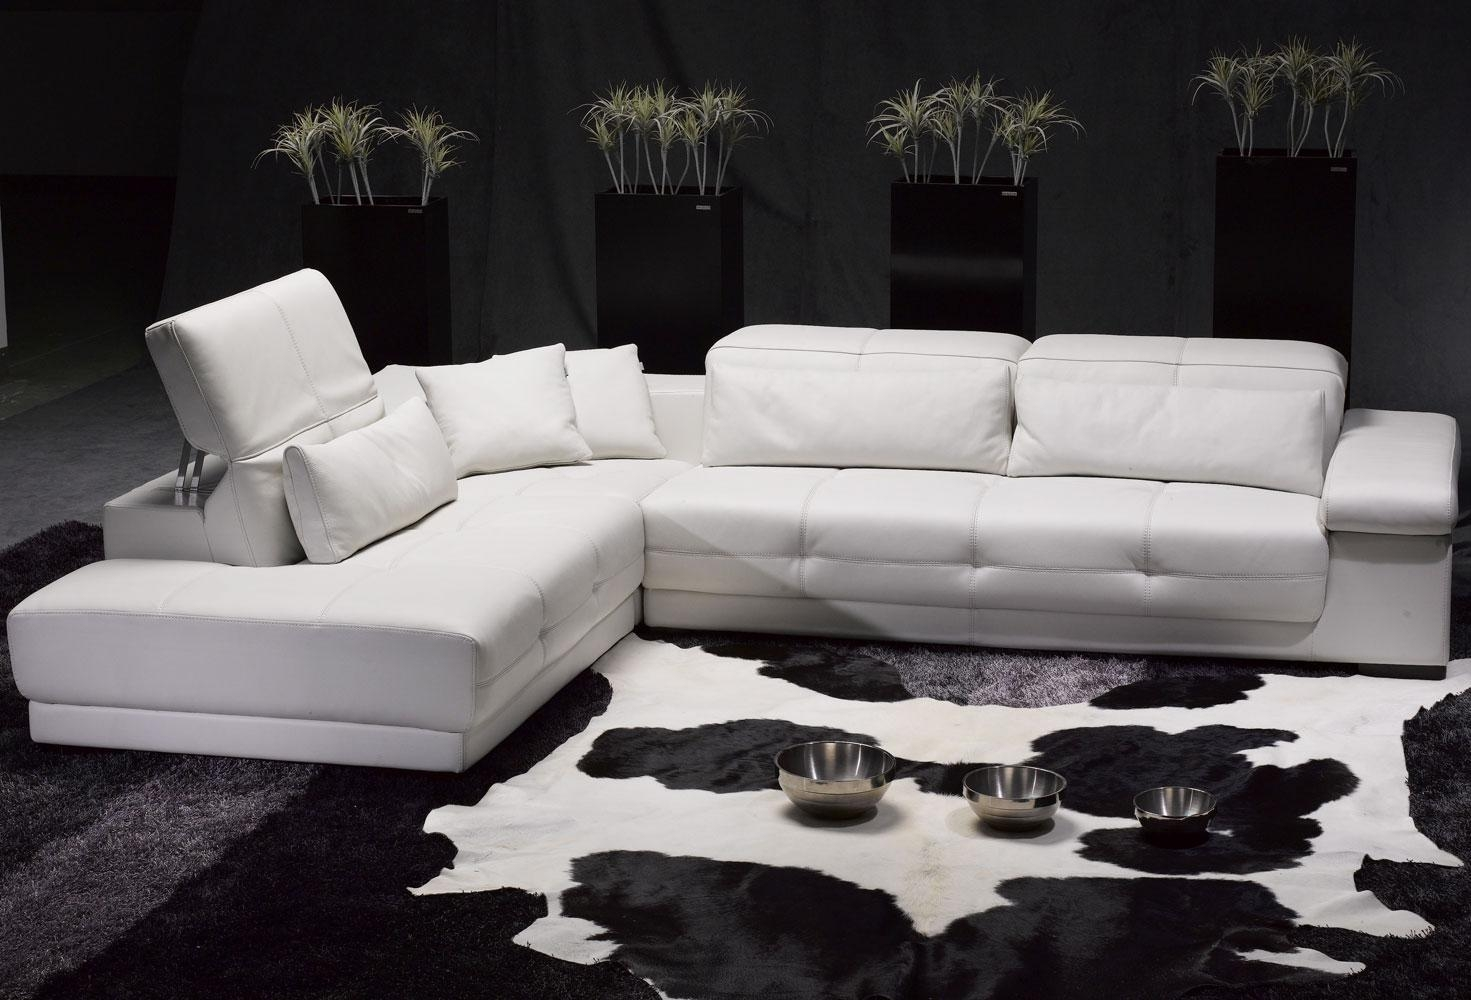 Vig Furniture Black And White Bonded Leather Sofa Set – S3Net Inside Black And White Leather Sofas (View 16 of 20)